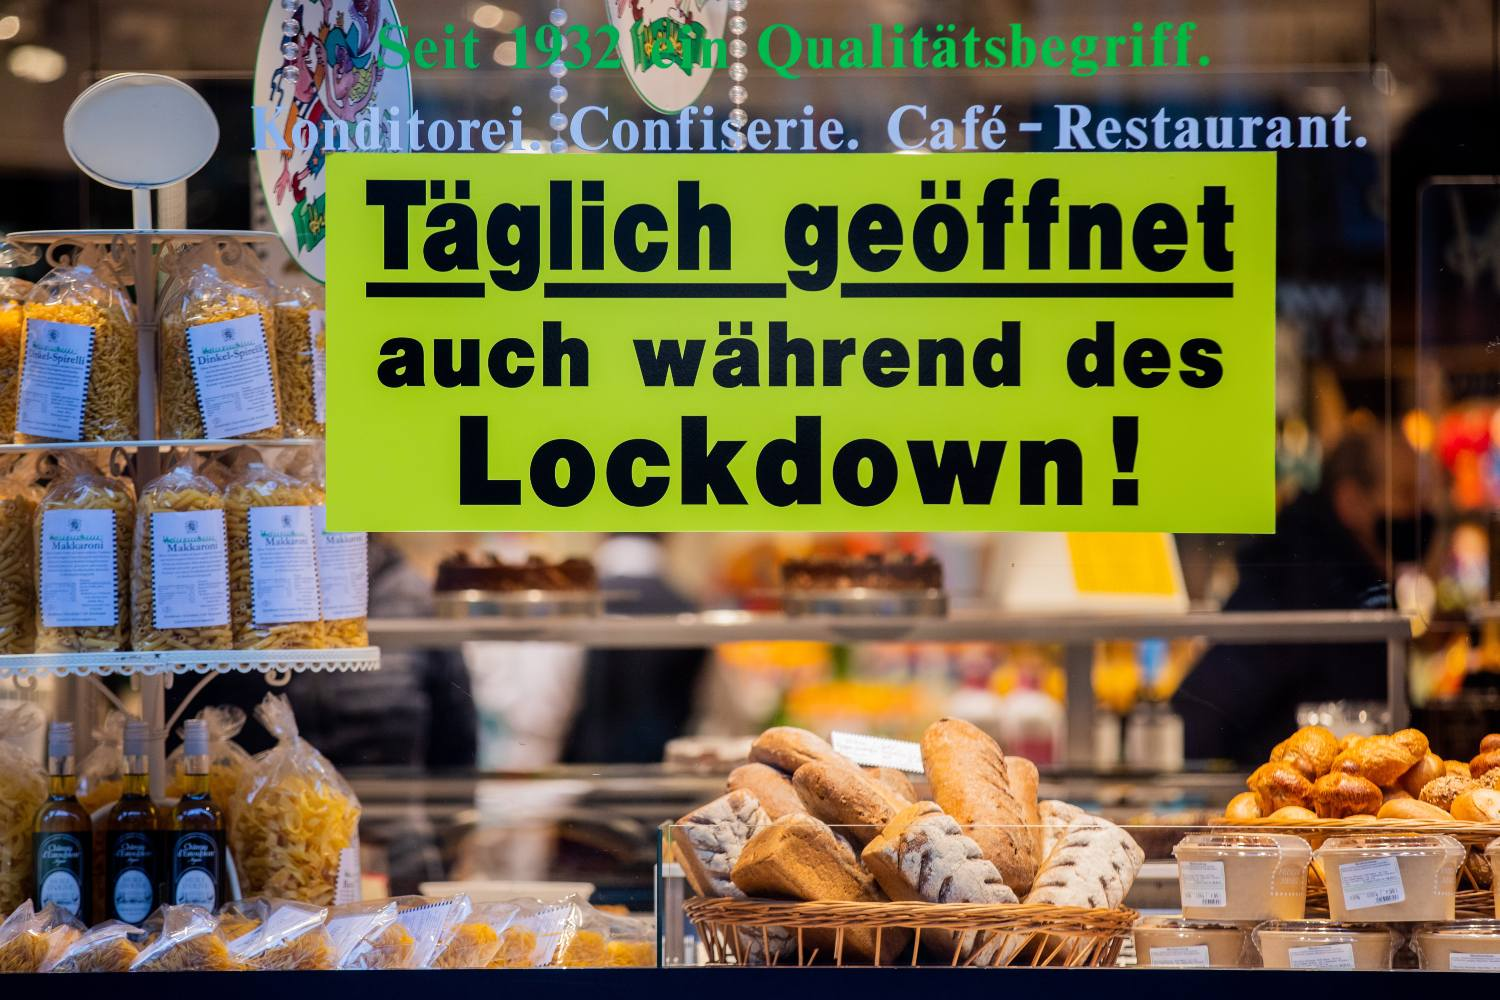 'Lockdown' voted Germany's English word of the year